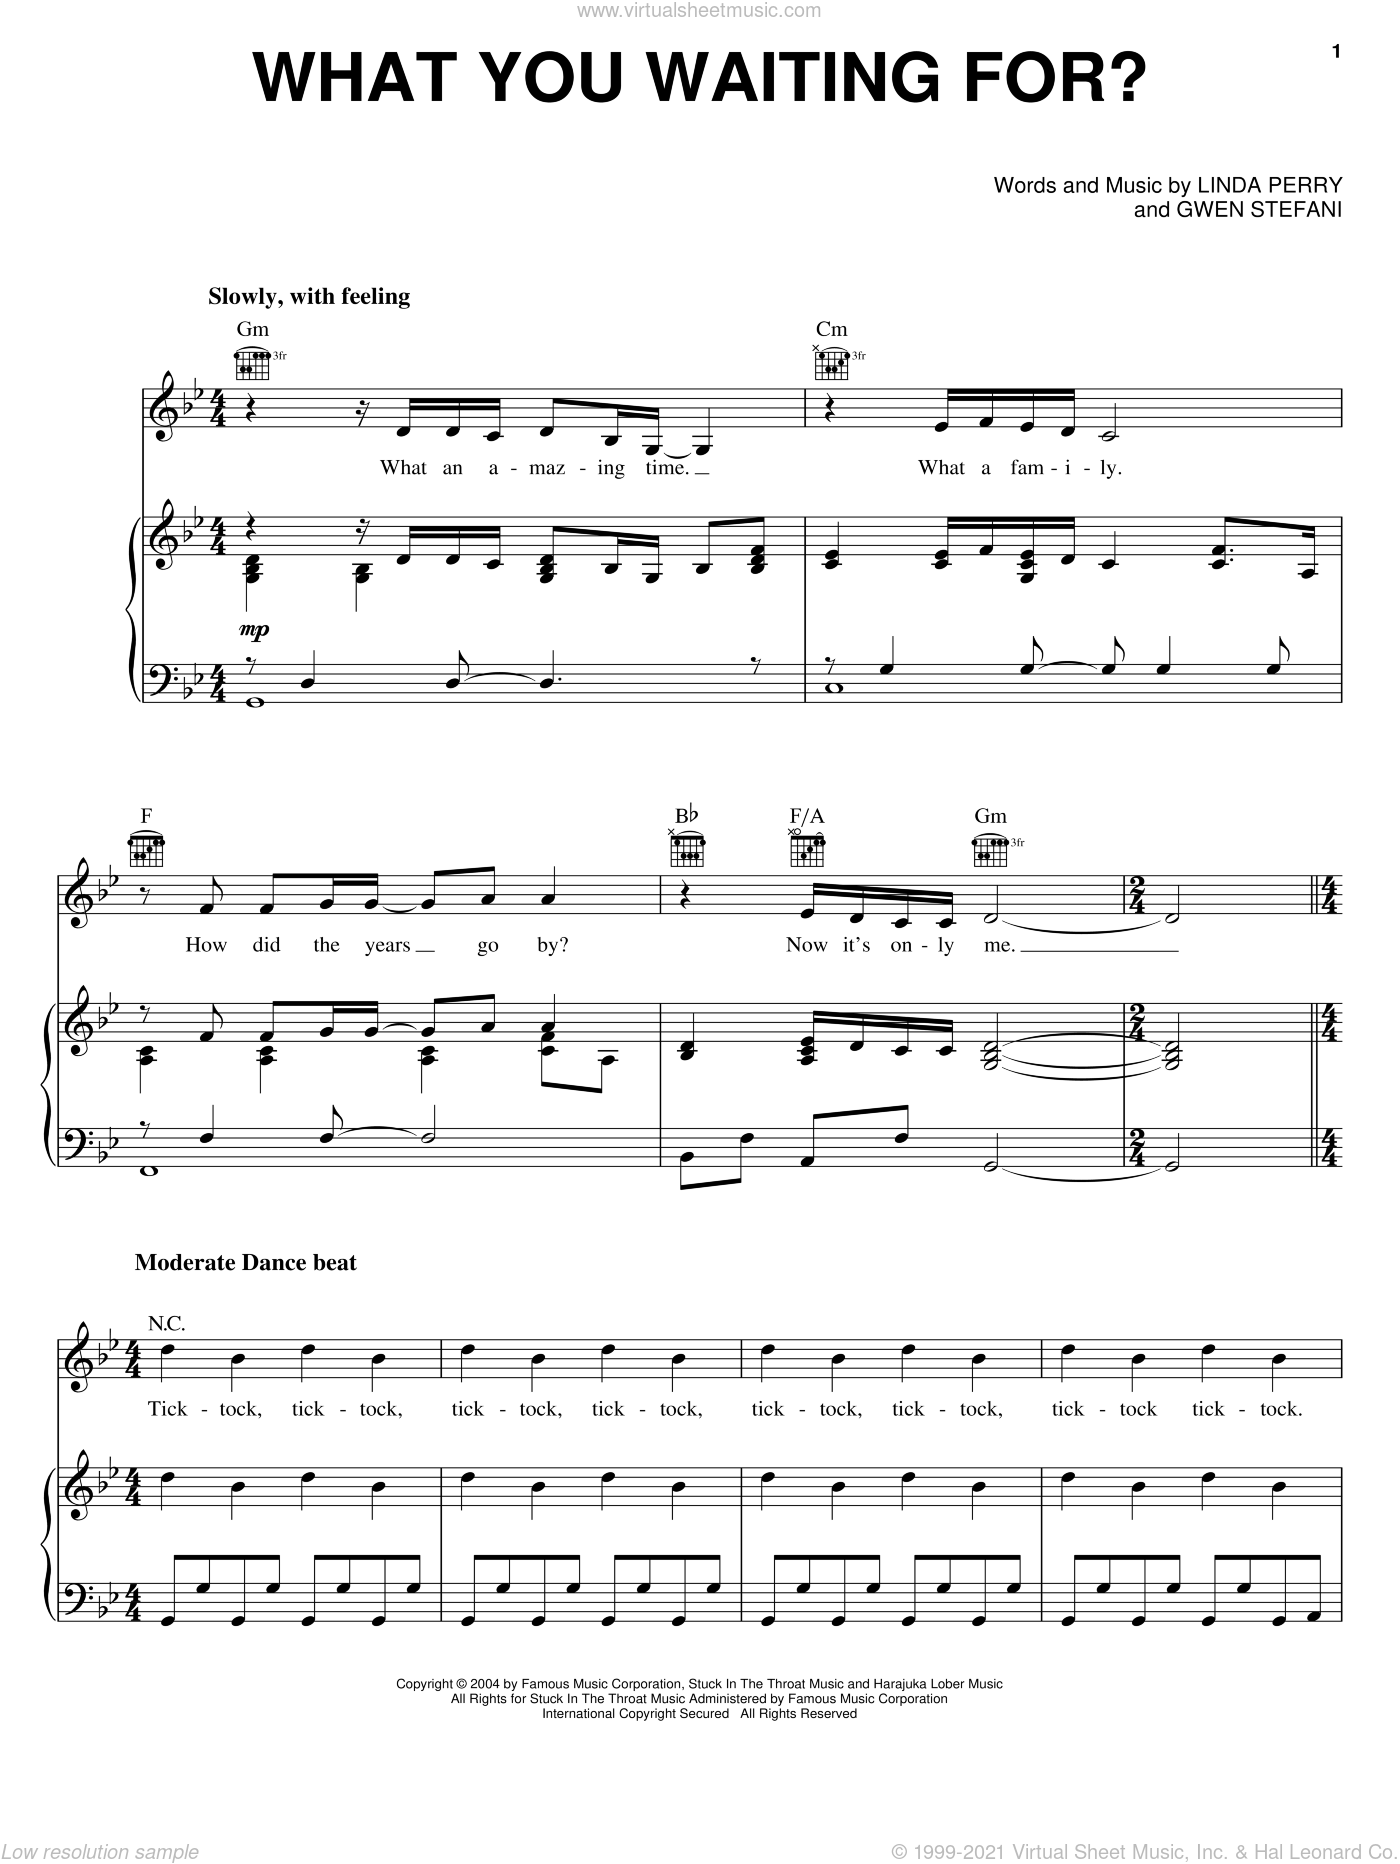 What You Waiting For? sheet music for voice, piano or guitar by Gwen Stefani and Linda Perry, intermediate skill level